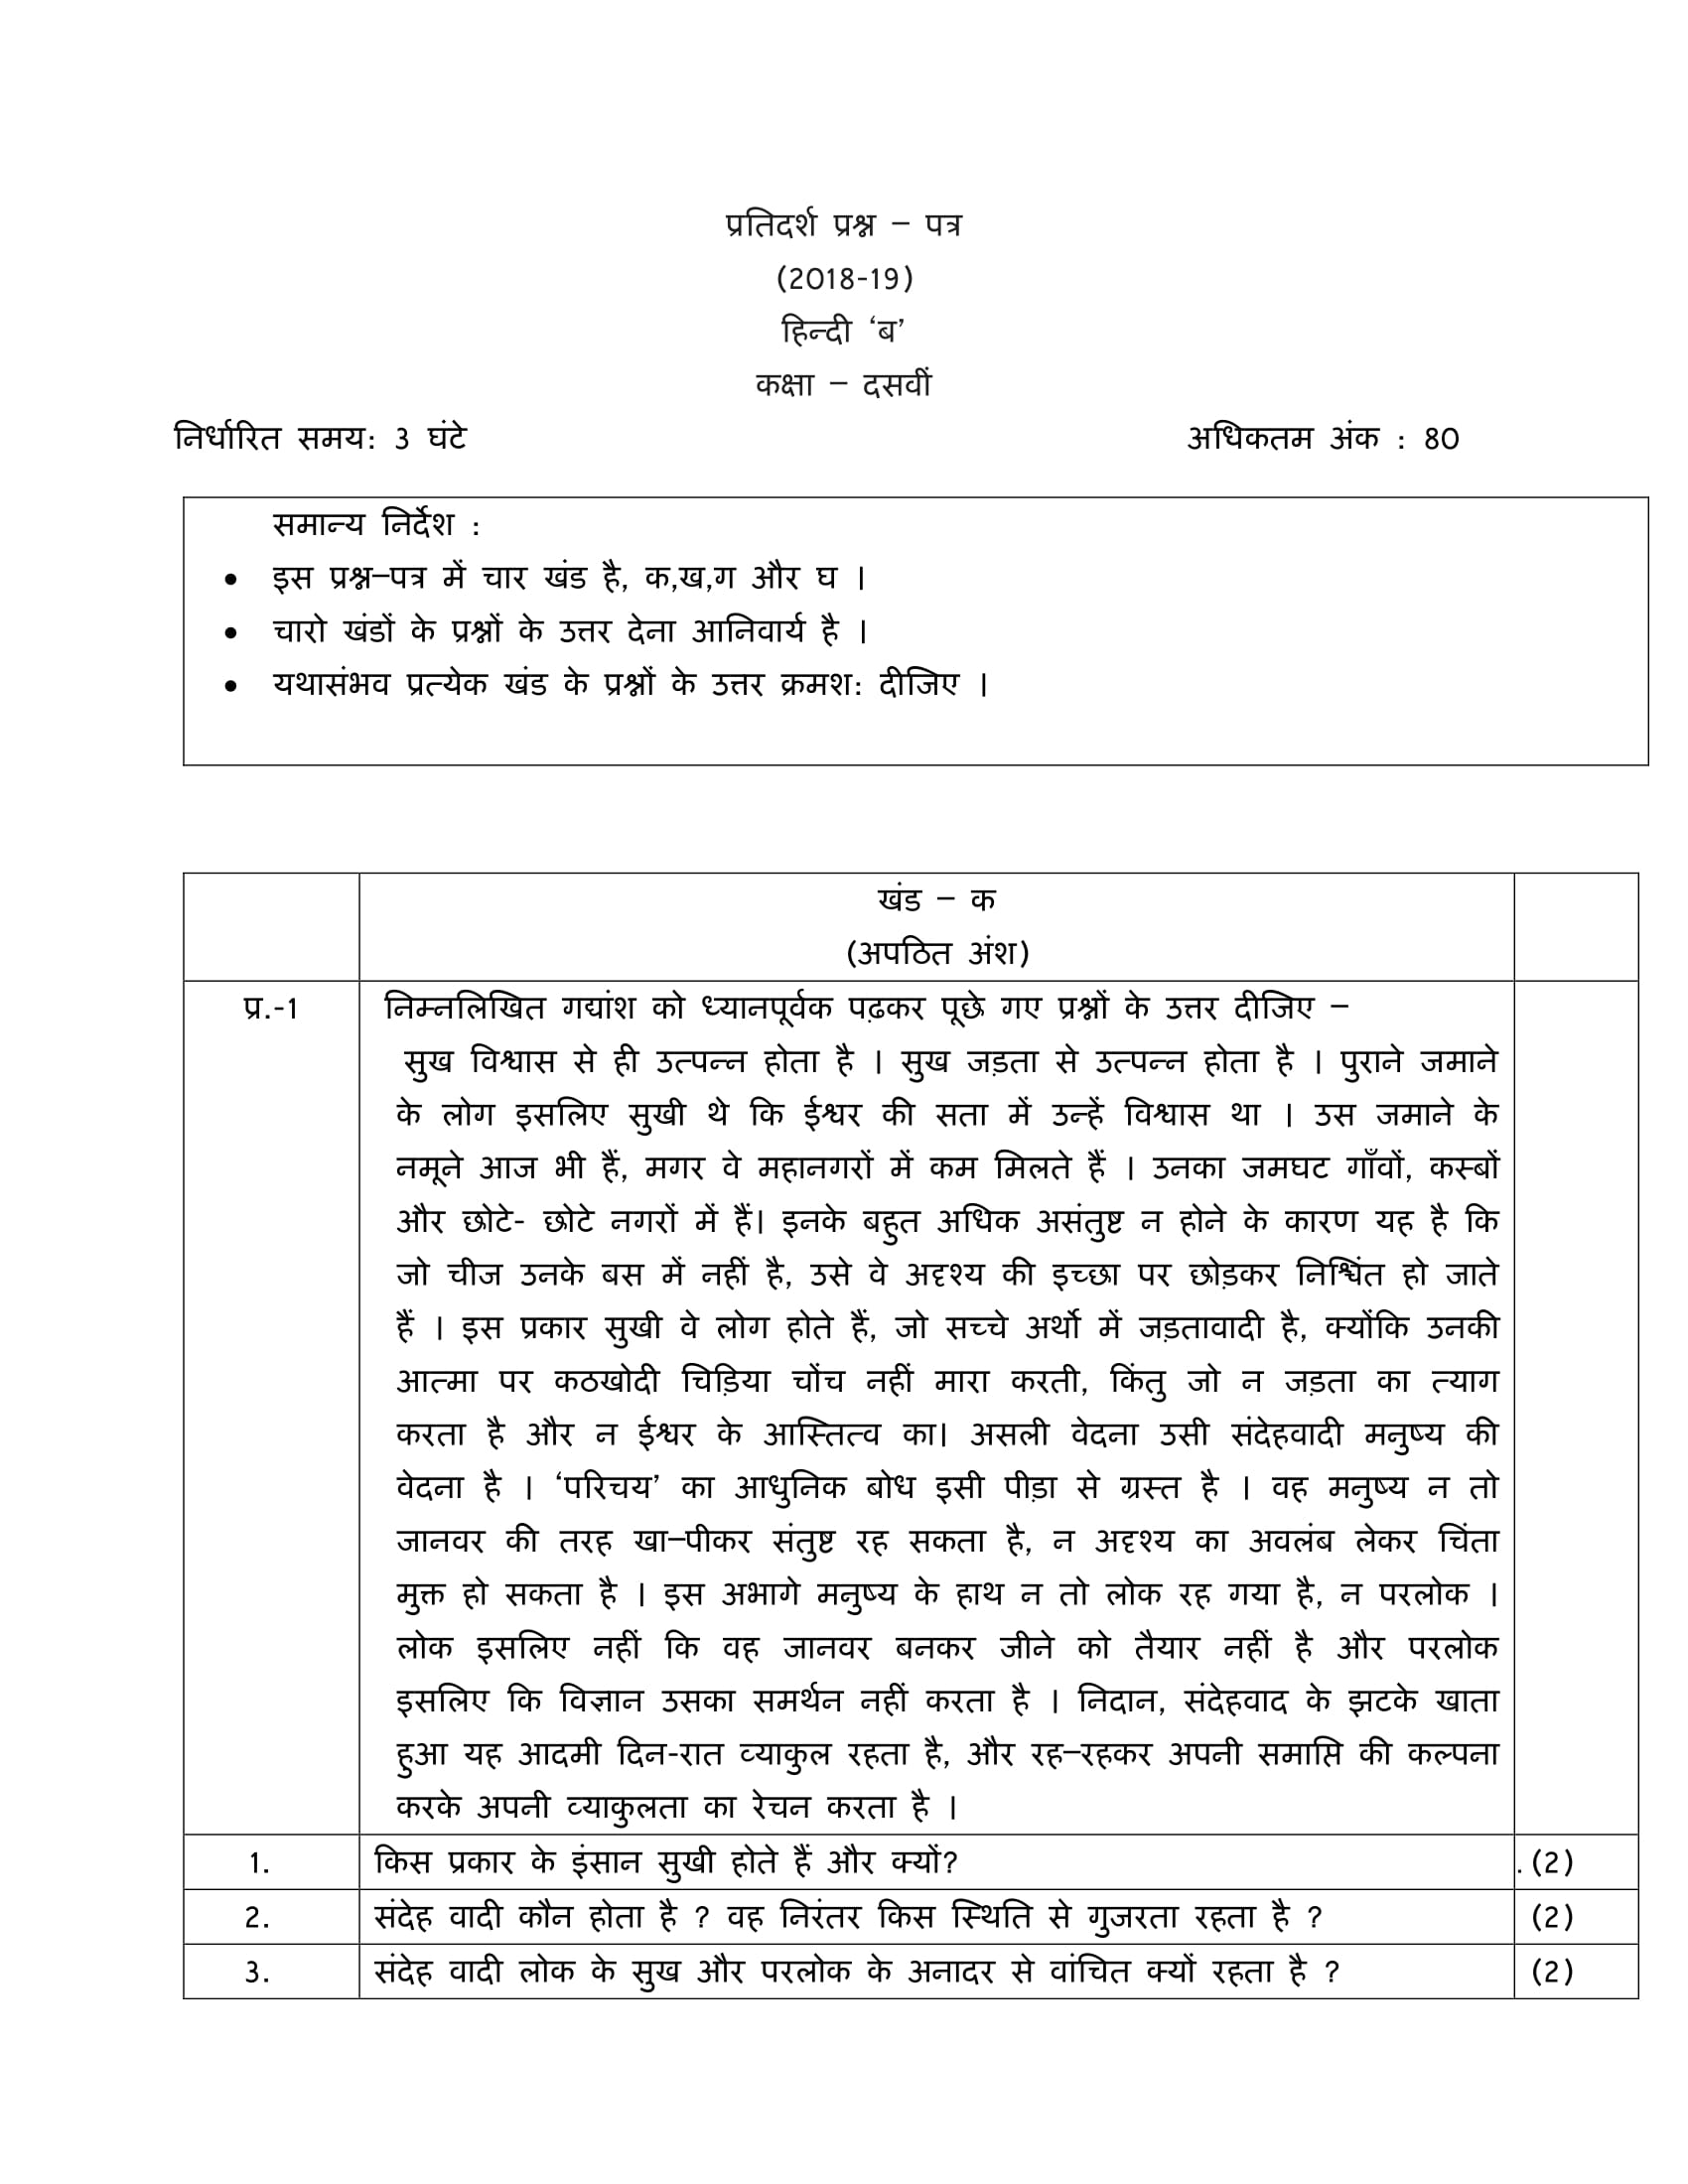 Hindi B Class 10 CBSE Solved Paper with Answers, Marking Scheme PDF Download 2019 - Official